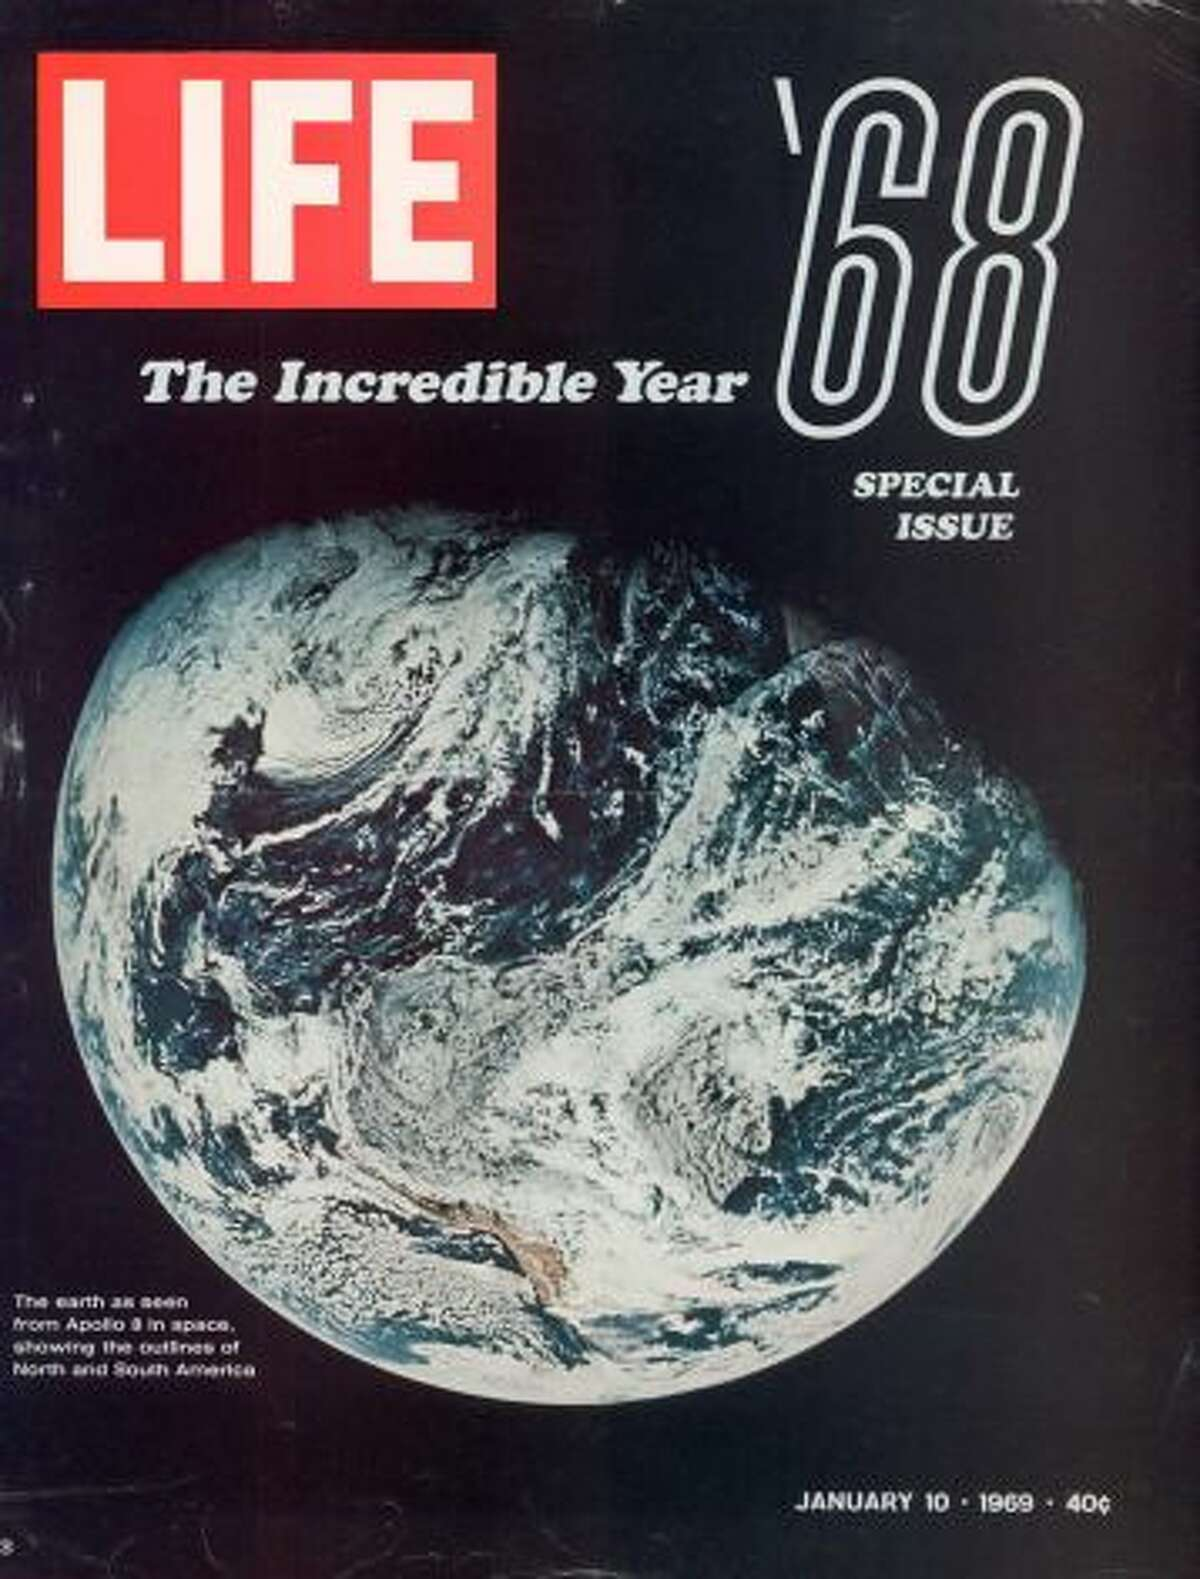 The 1968 Special Issue featuring NASA pic showing Earth from space as seen by the Apollo 8 mission. (Photo by Life Magazine/Life Magazine/Time & Life Pictures/Getty Images)